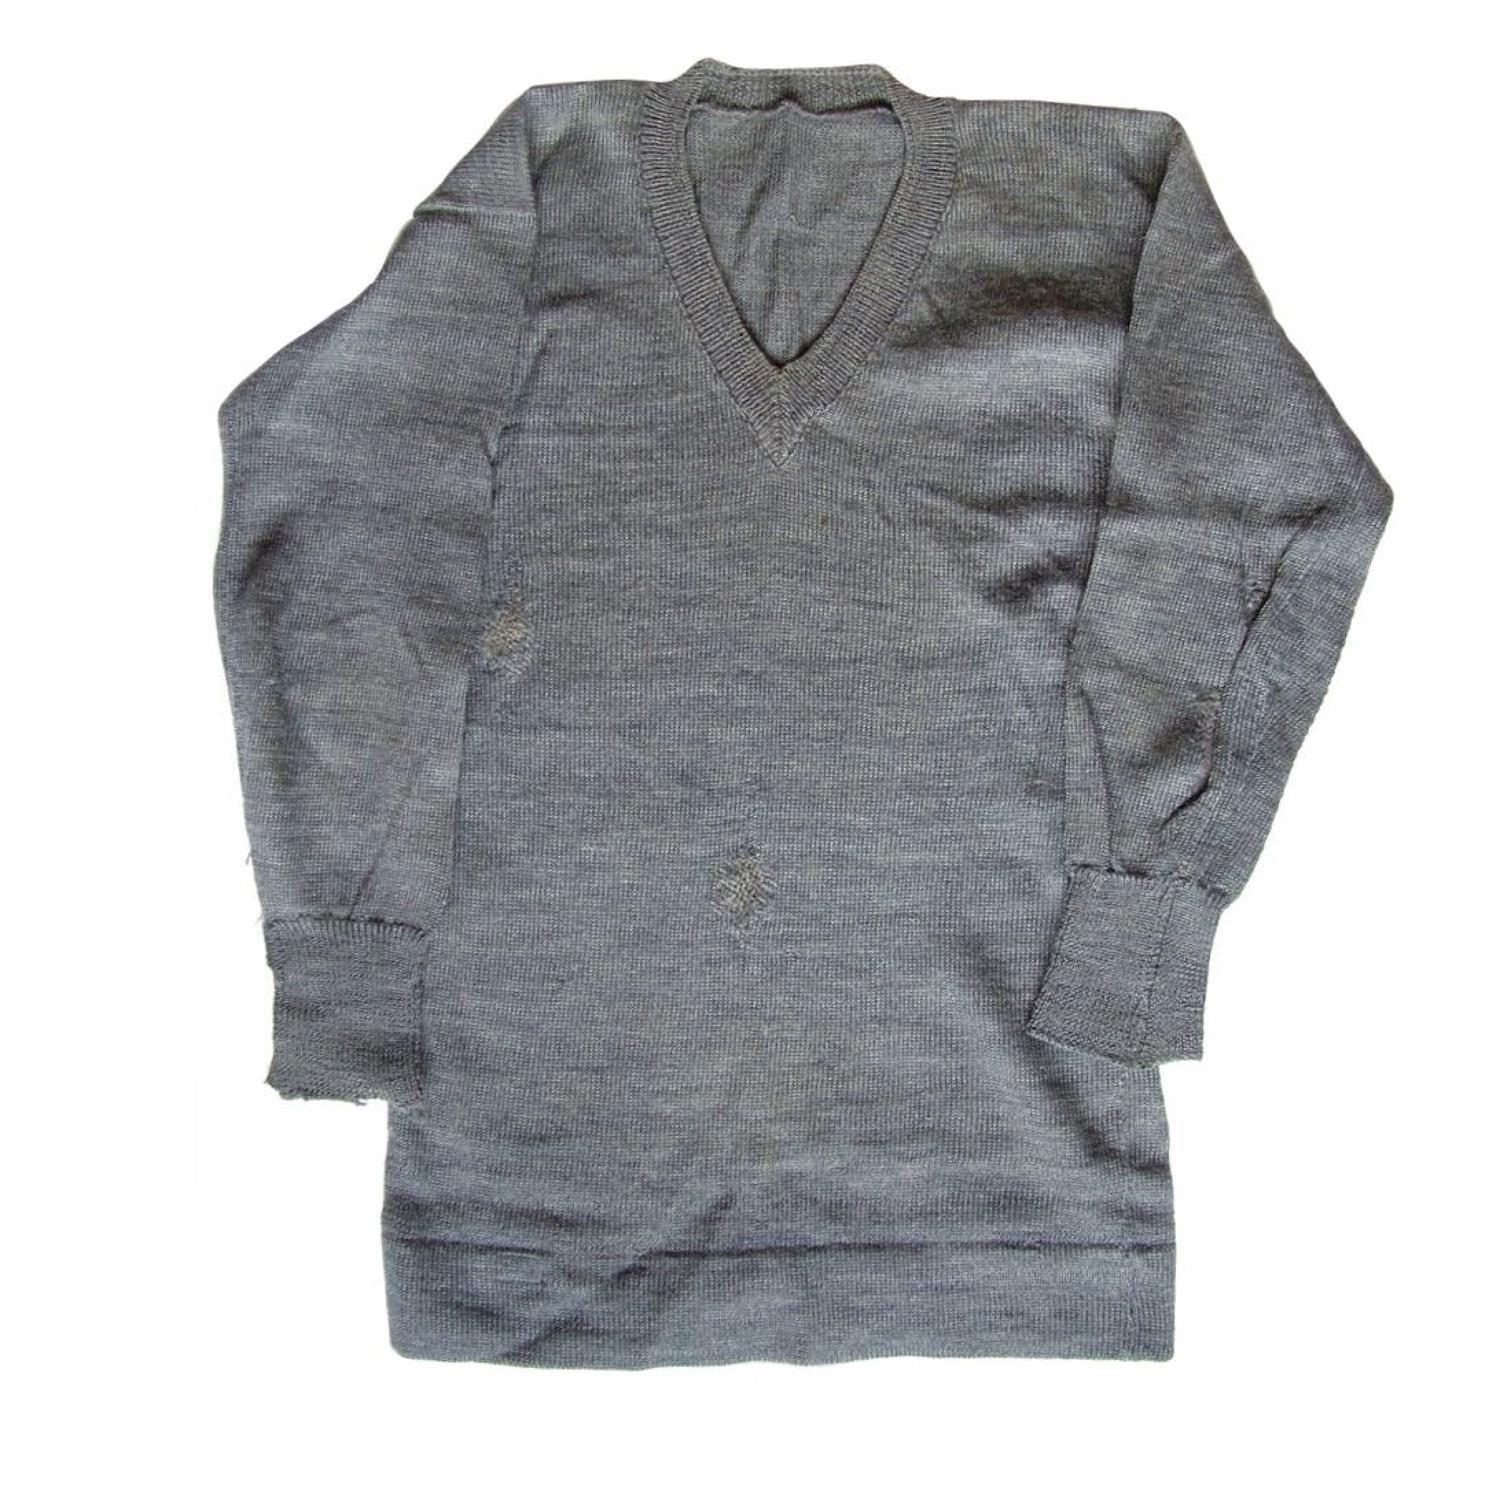 RAF Aircrew sweater